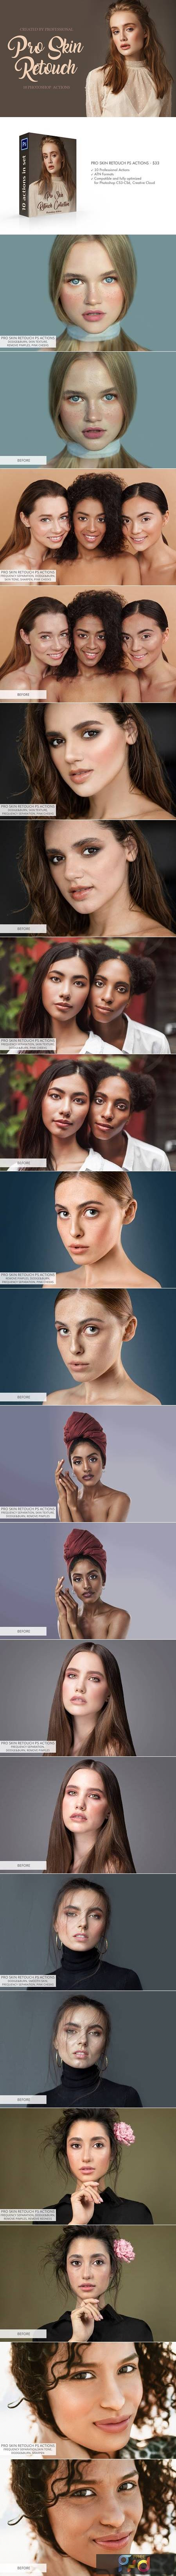 Pro Skin Retouch Photoshop Actions 4548028 1